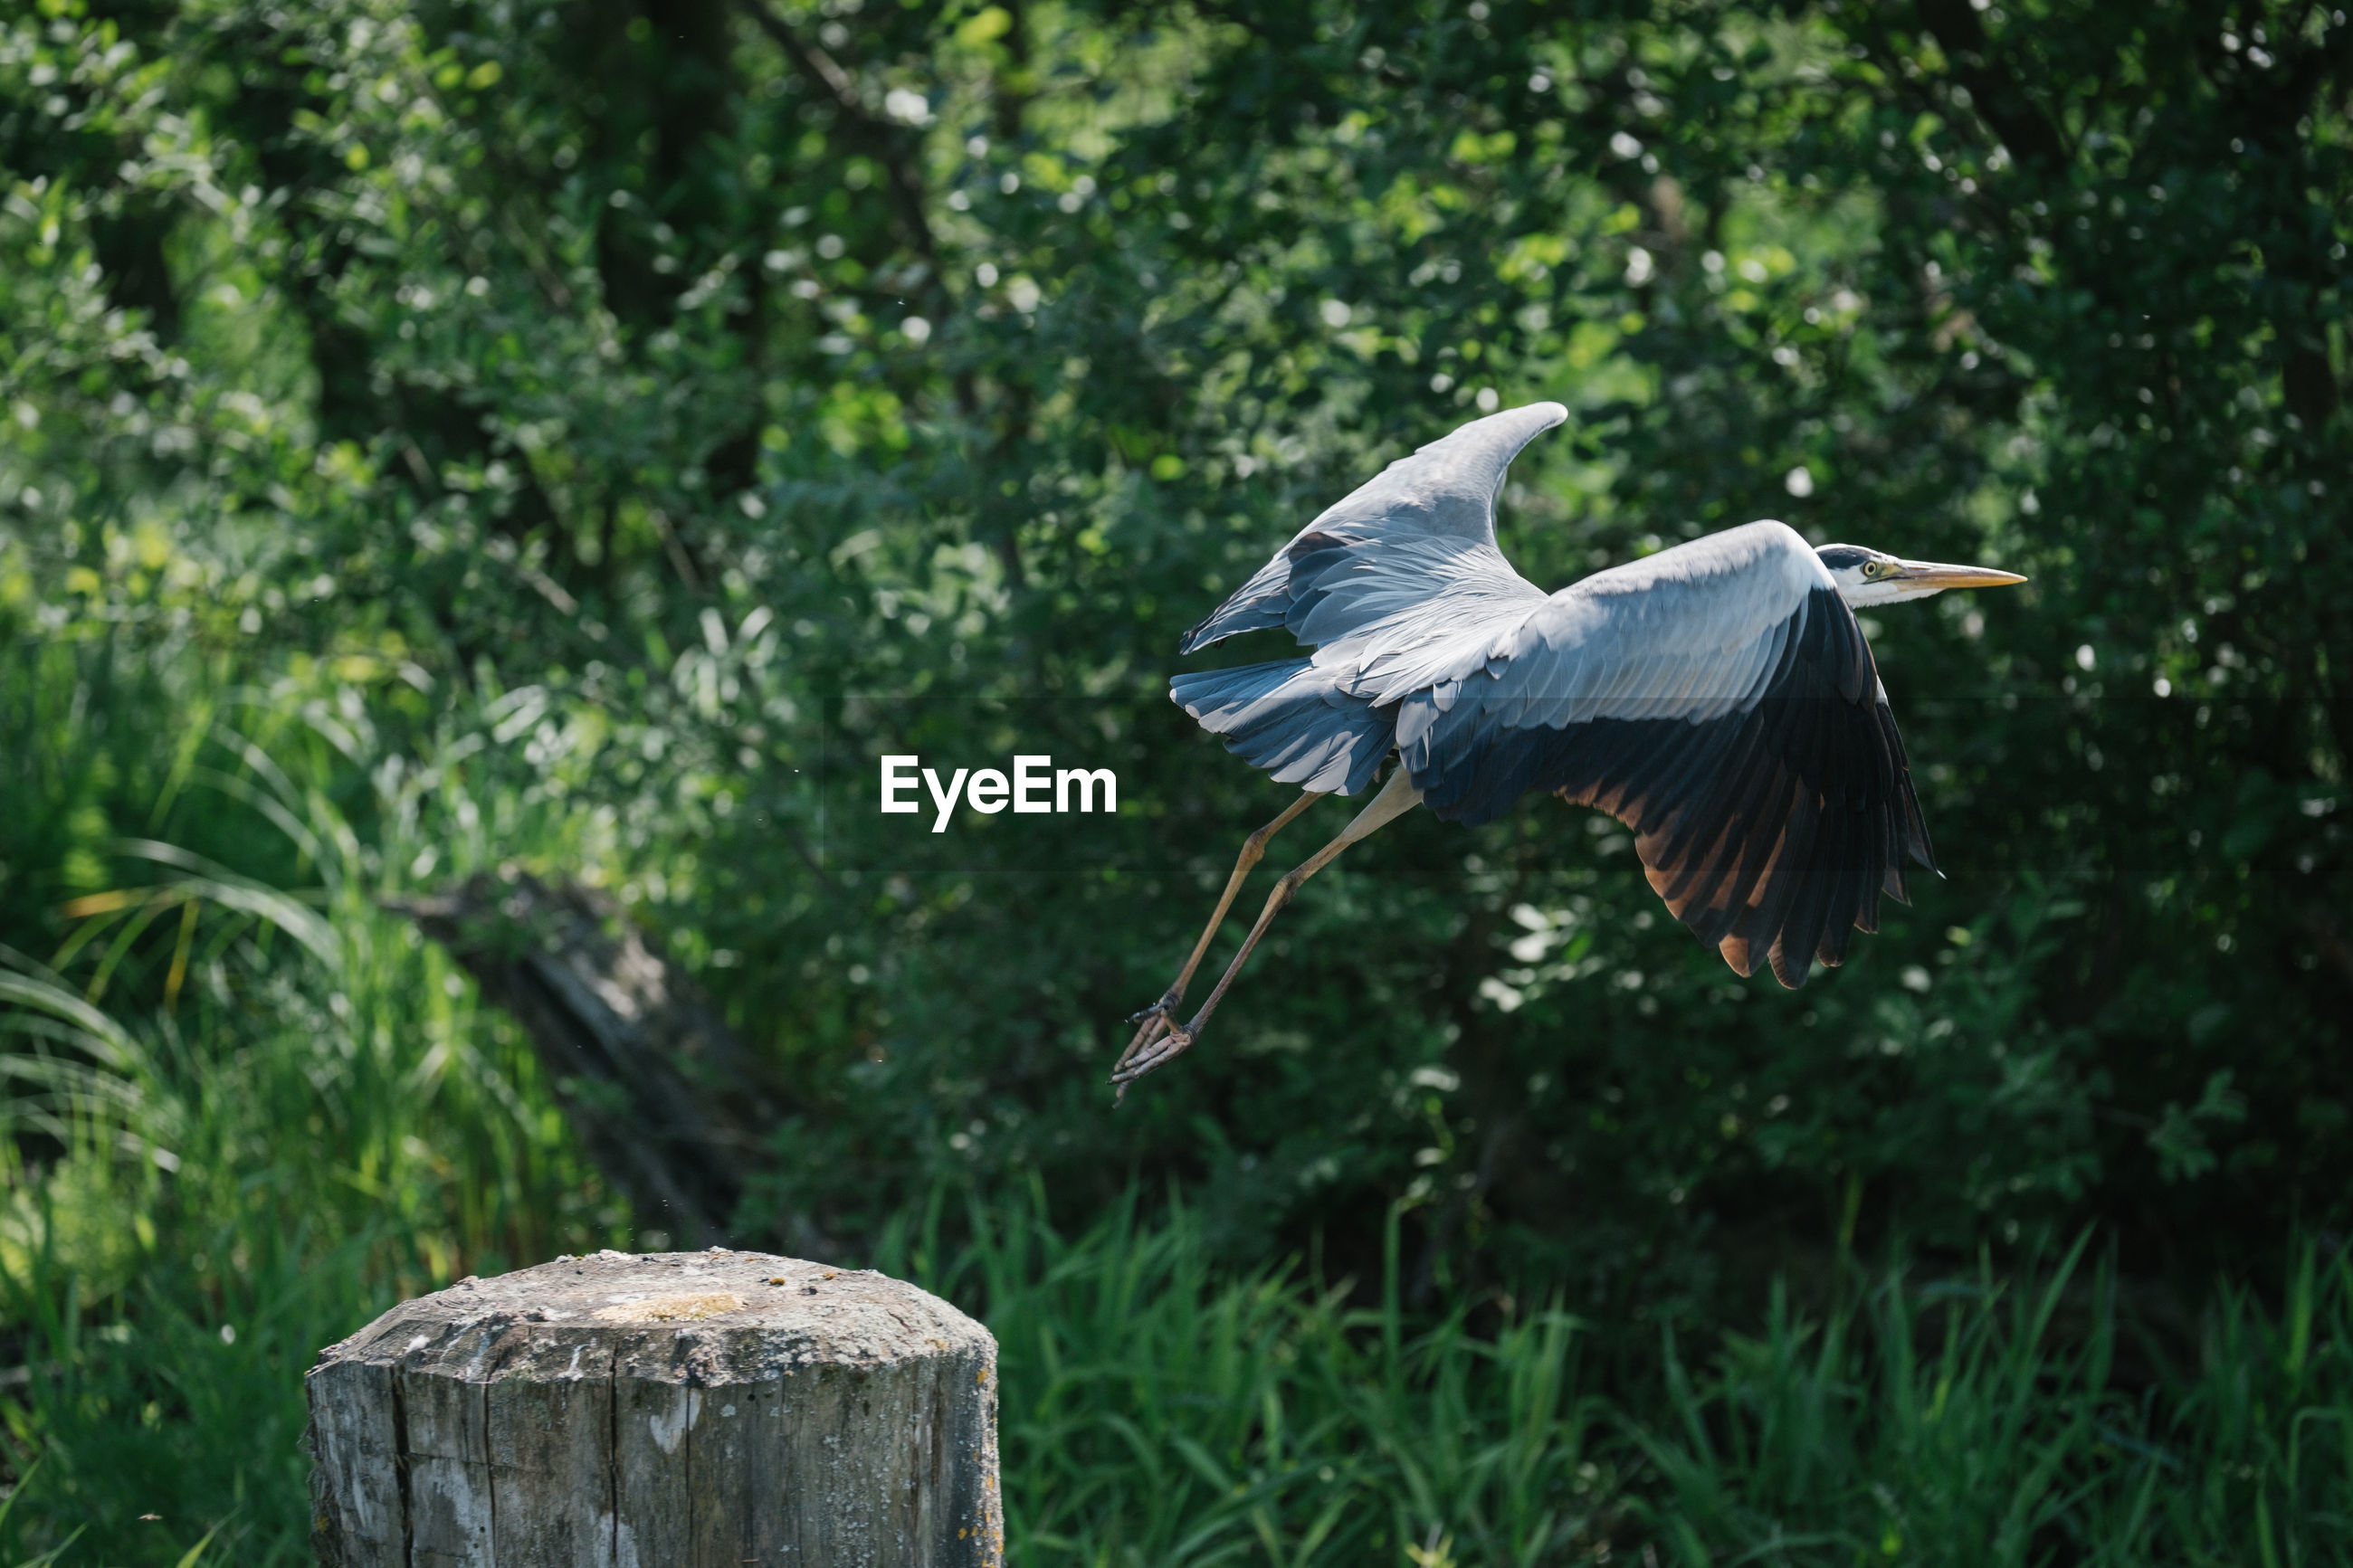 vertebrate, bird, animals in the wild, animal wildlife, animal themes, flying, animal, spread wings, one animal, focus on foreground, plant, nature, tree, no people, day, green color, side view, mid-air, outdoors, heron, wooden post